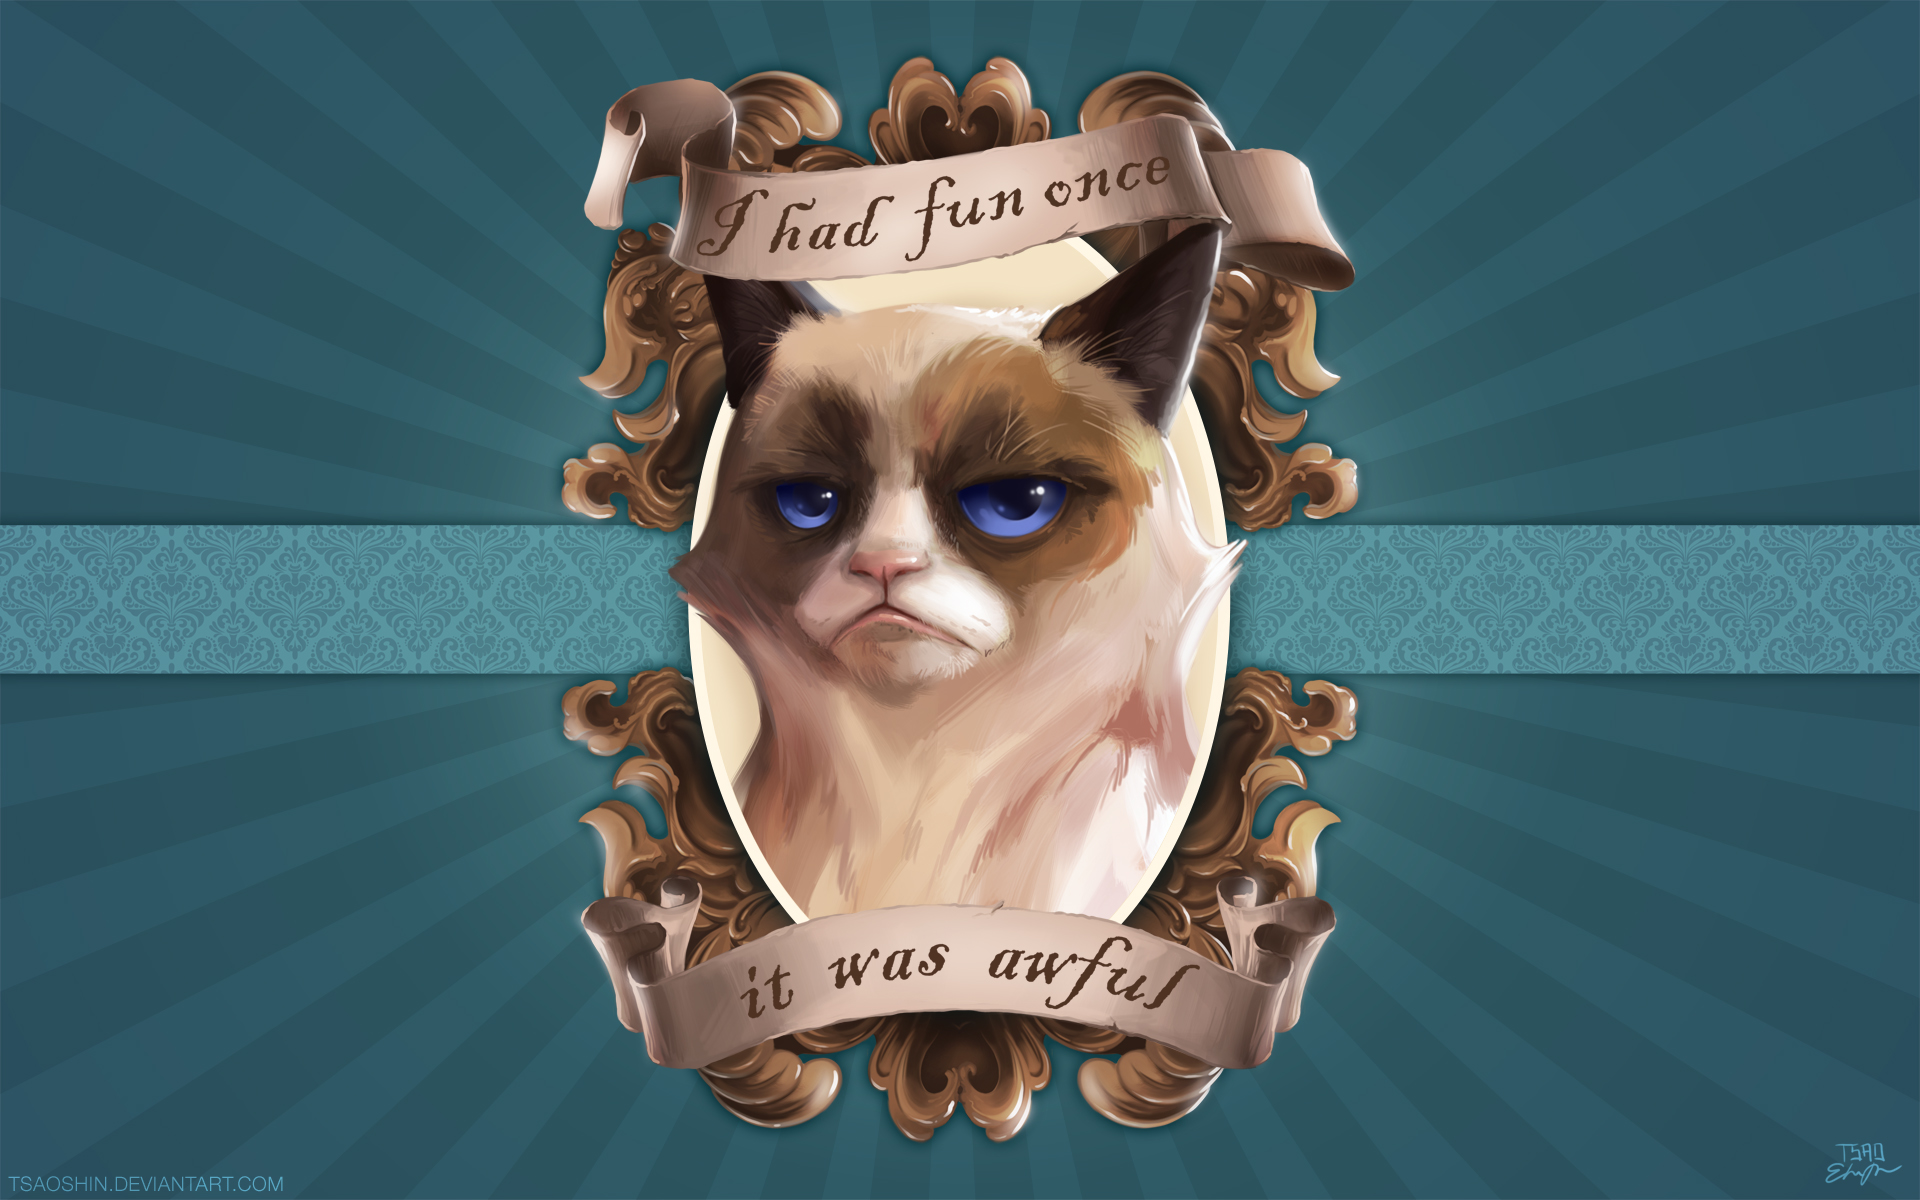 This is What Happens When You Mix Grumpy Cat and Disney Films